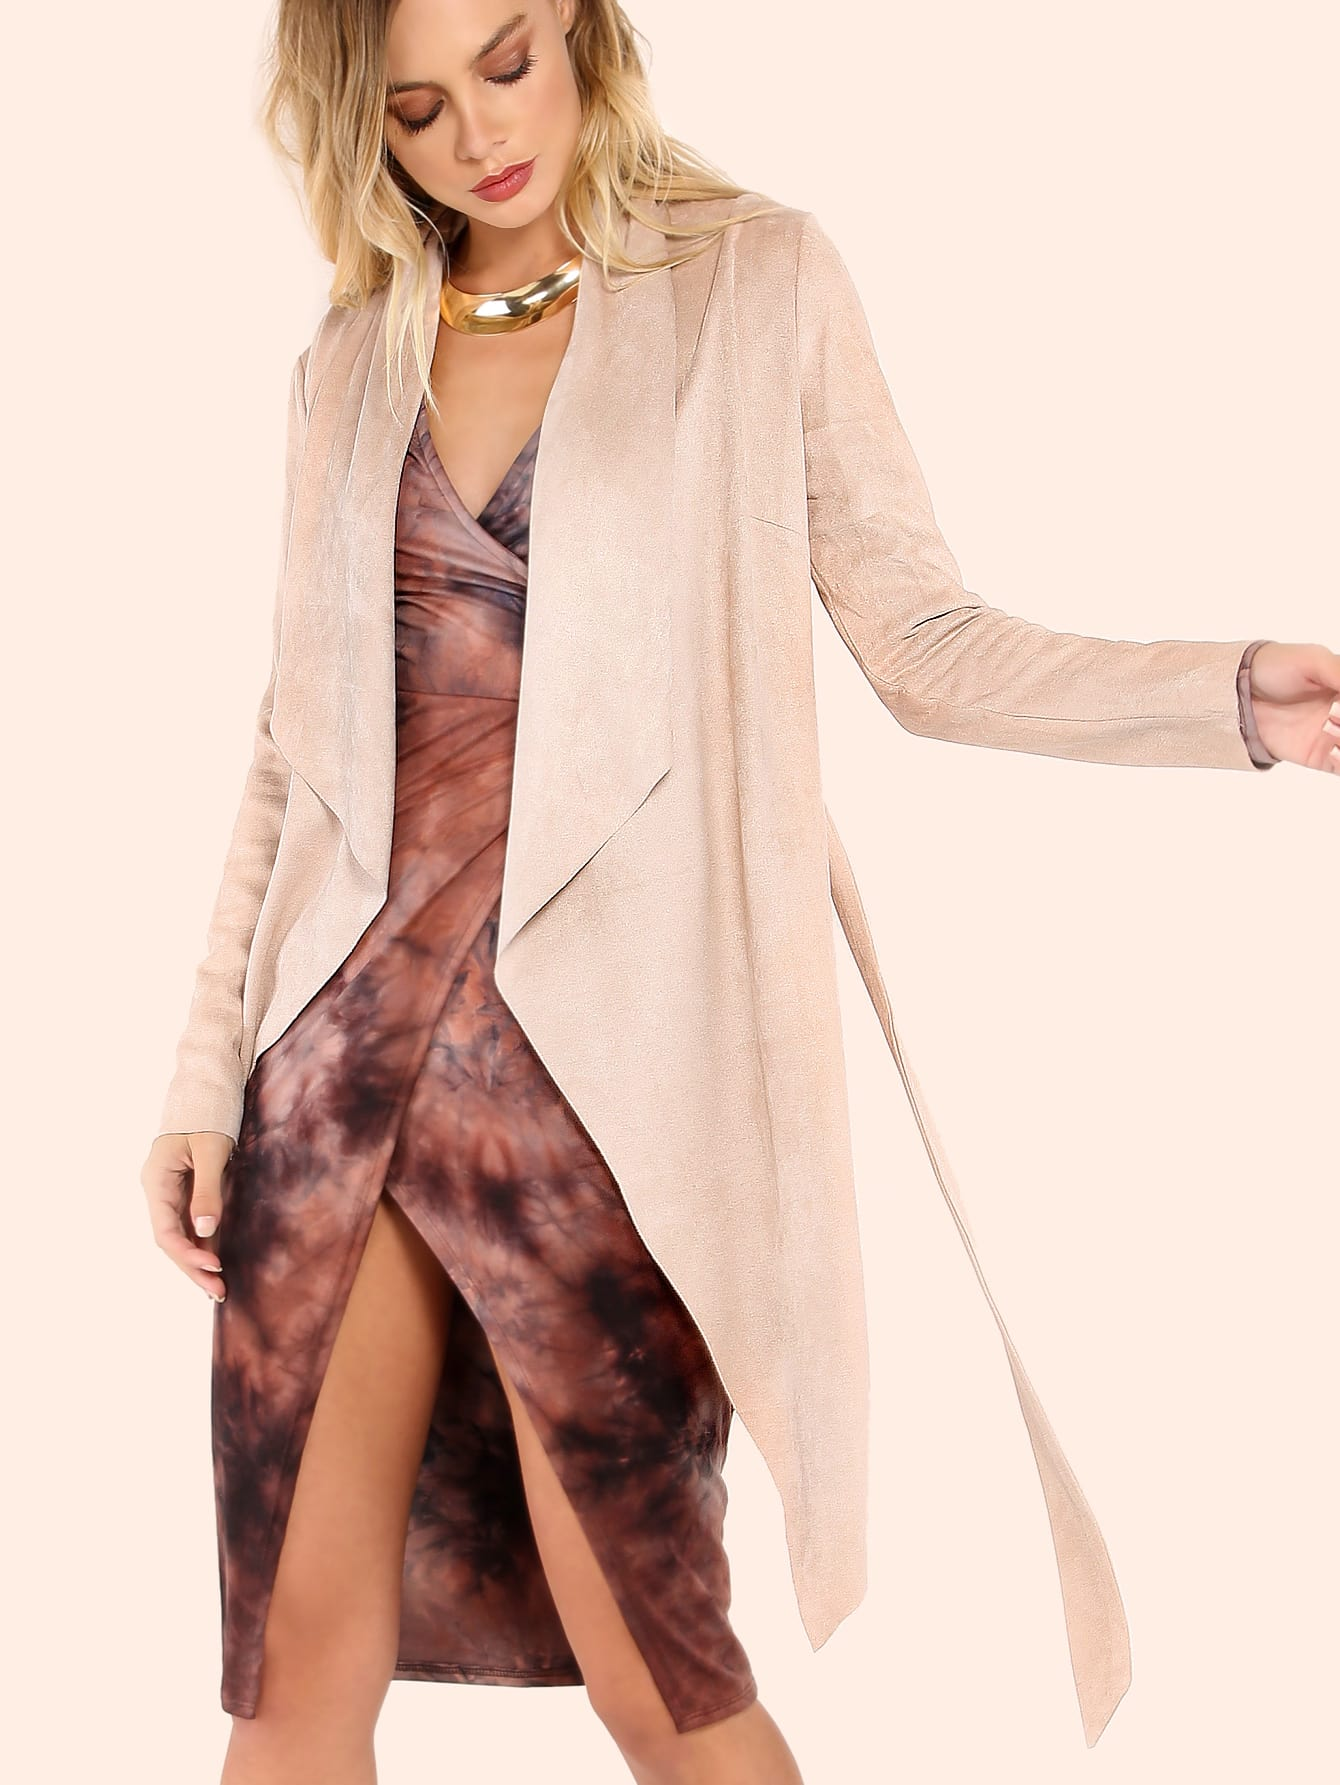 Suede Belted Crepe Lapel Outerwear NUDESuede Belted Crepe Lapel Outerwear NUDE<br><br>color: Nude<br>size: L,M,S,XS